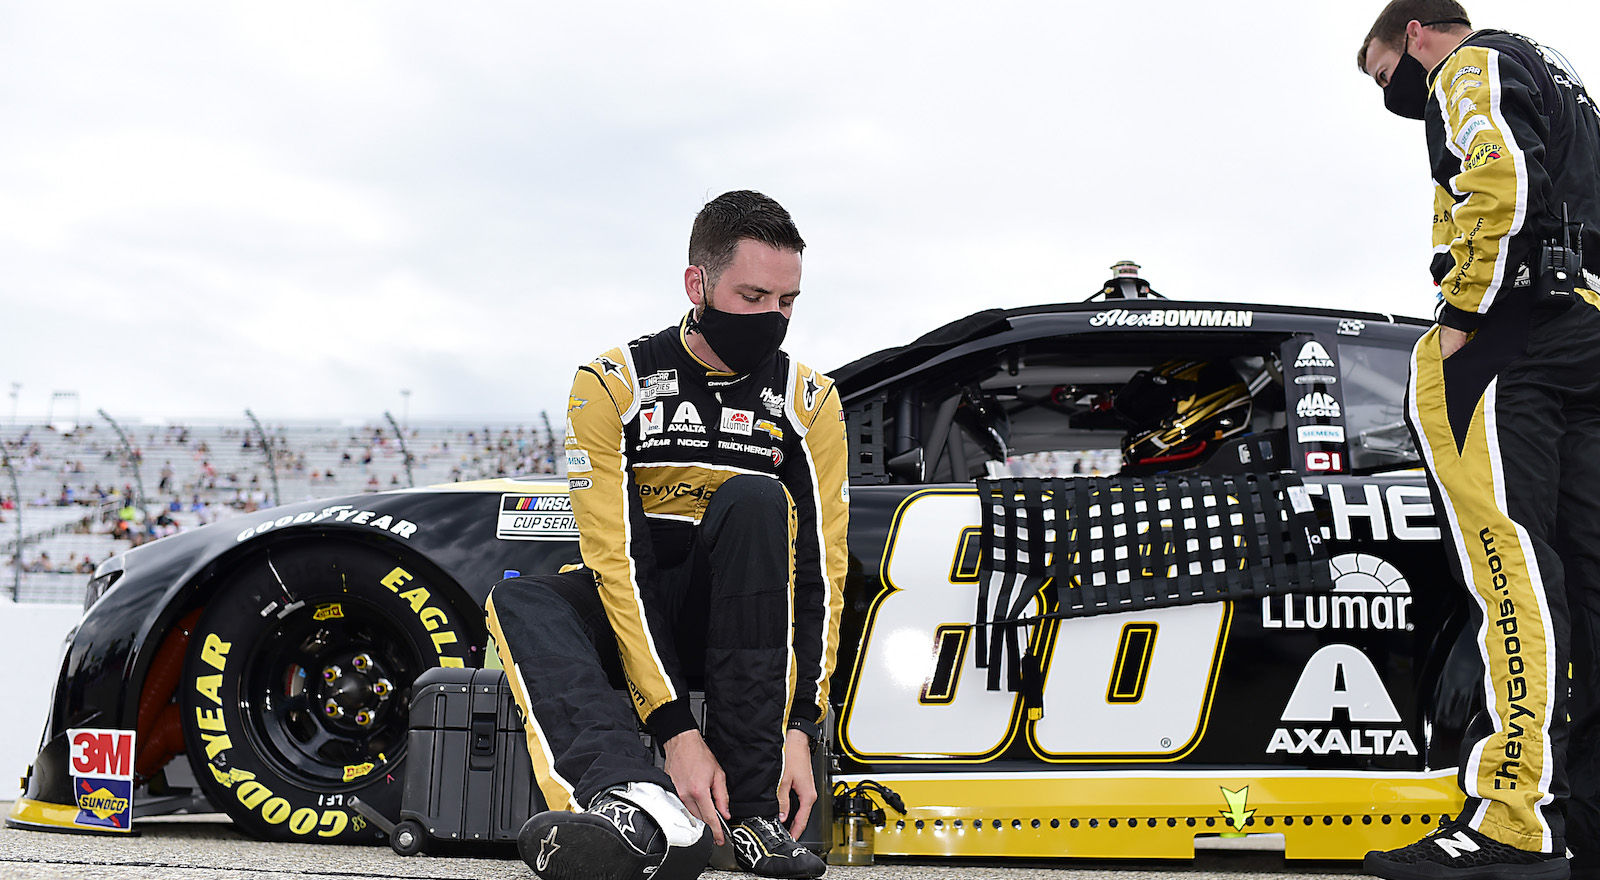 Bowman will drive Johnson's No. 48 in 2021